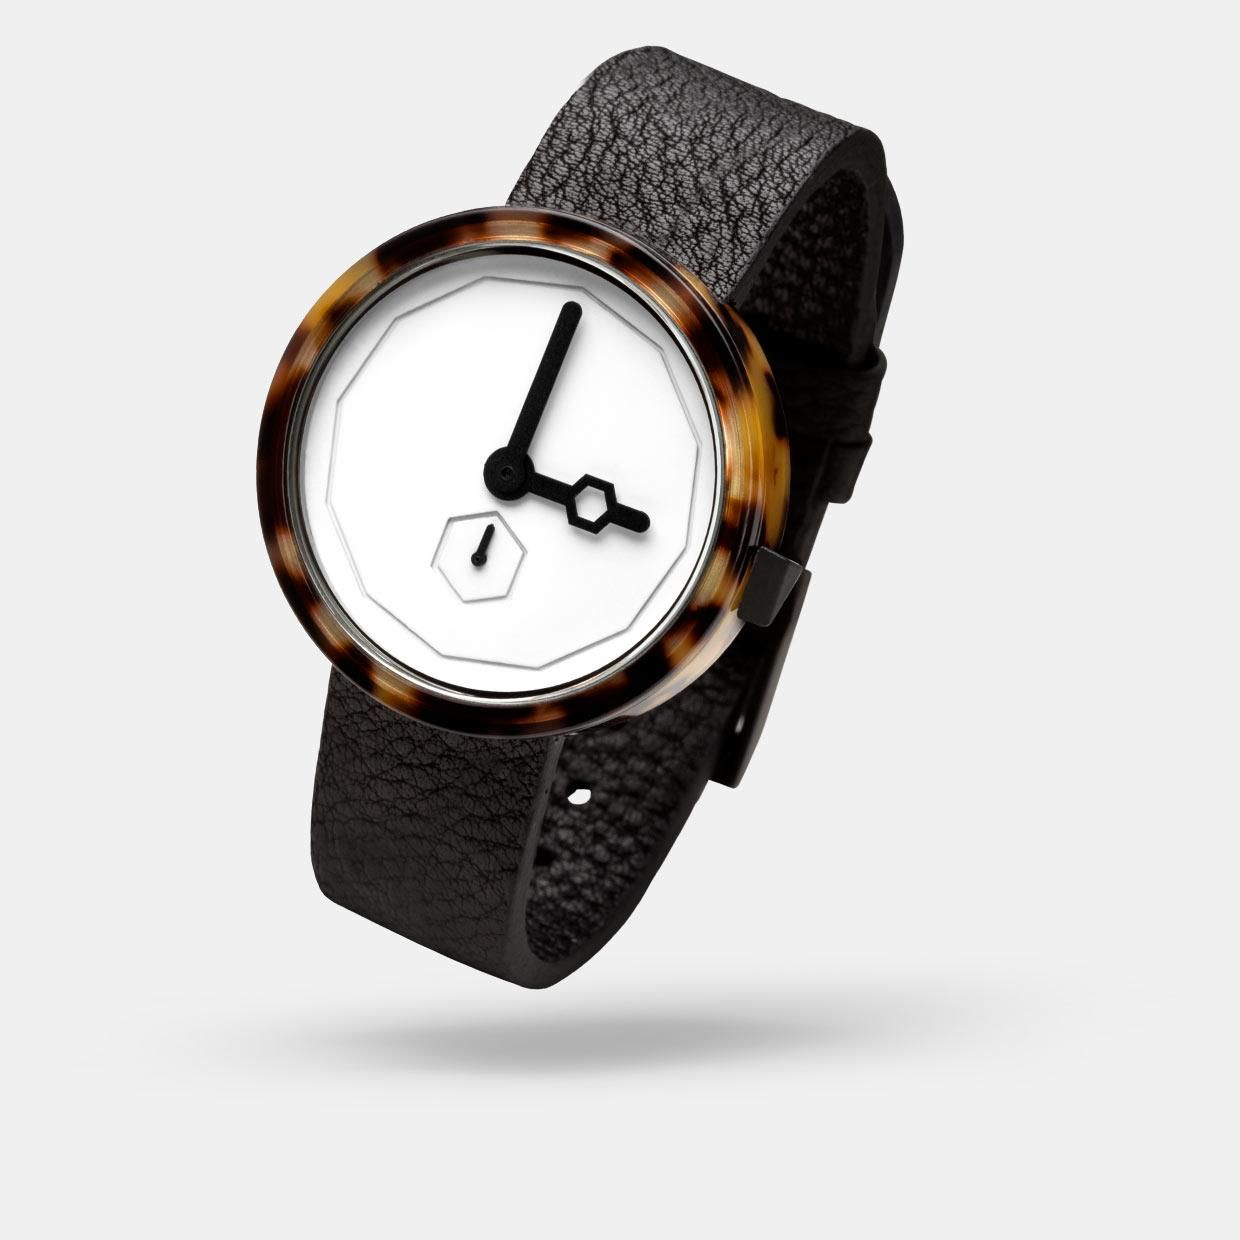 Forum on this topic: AÃRK Collective Watches, a-rk-collective-watches/